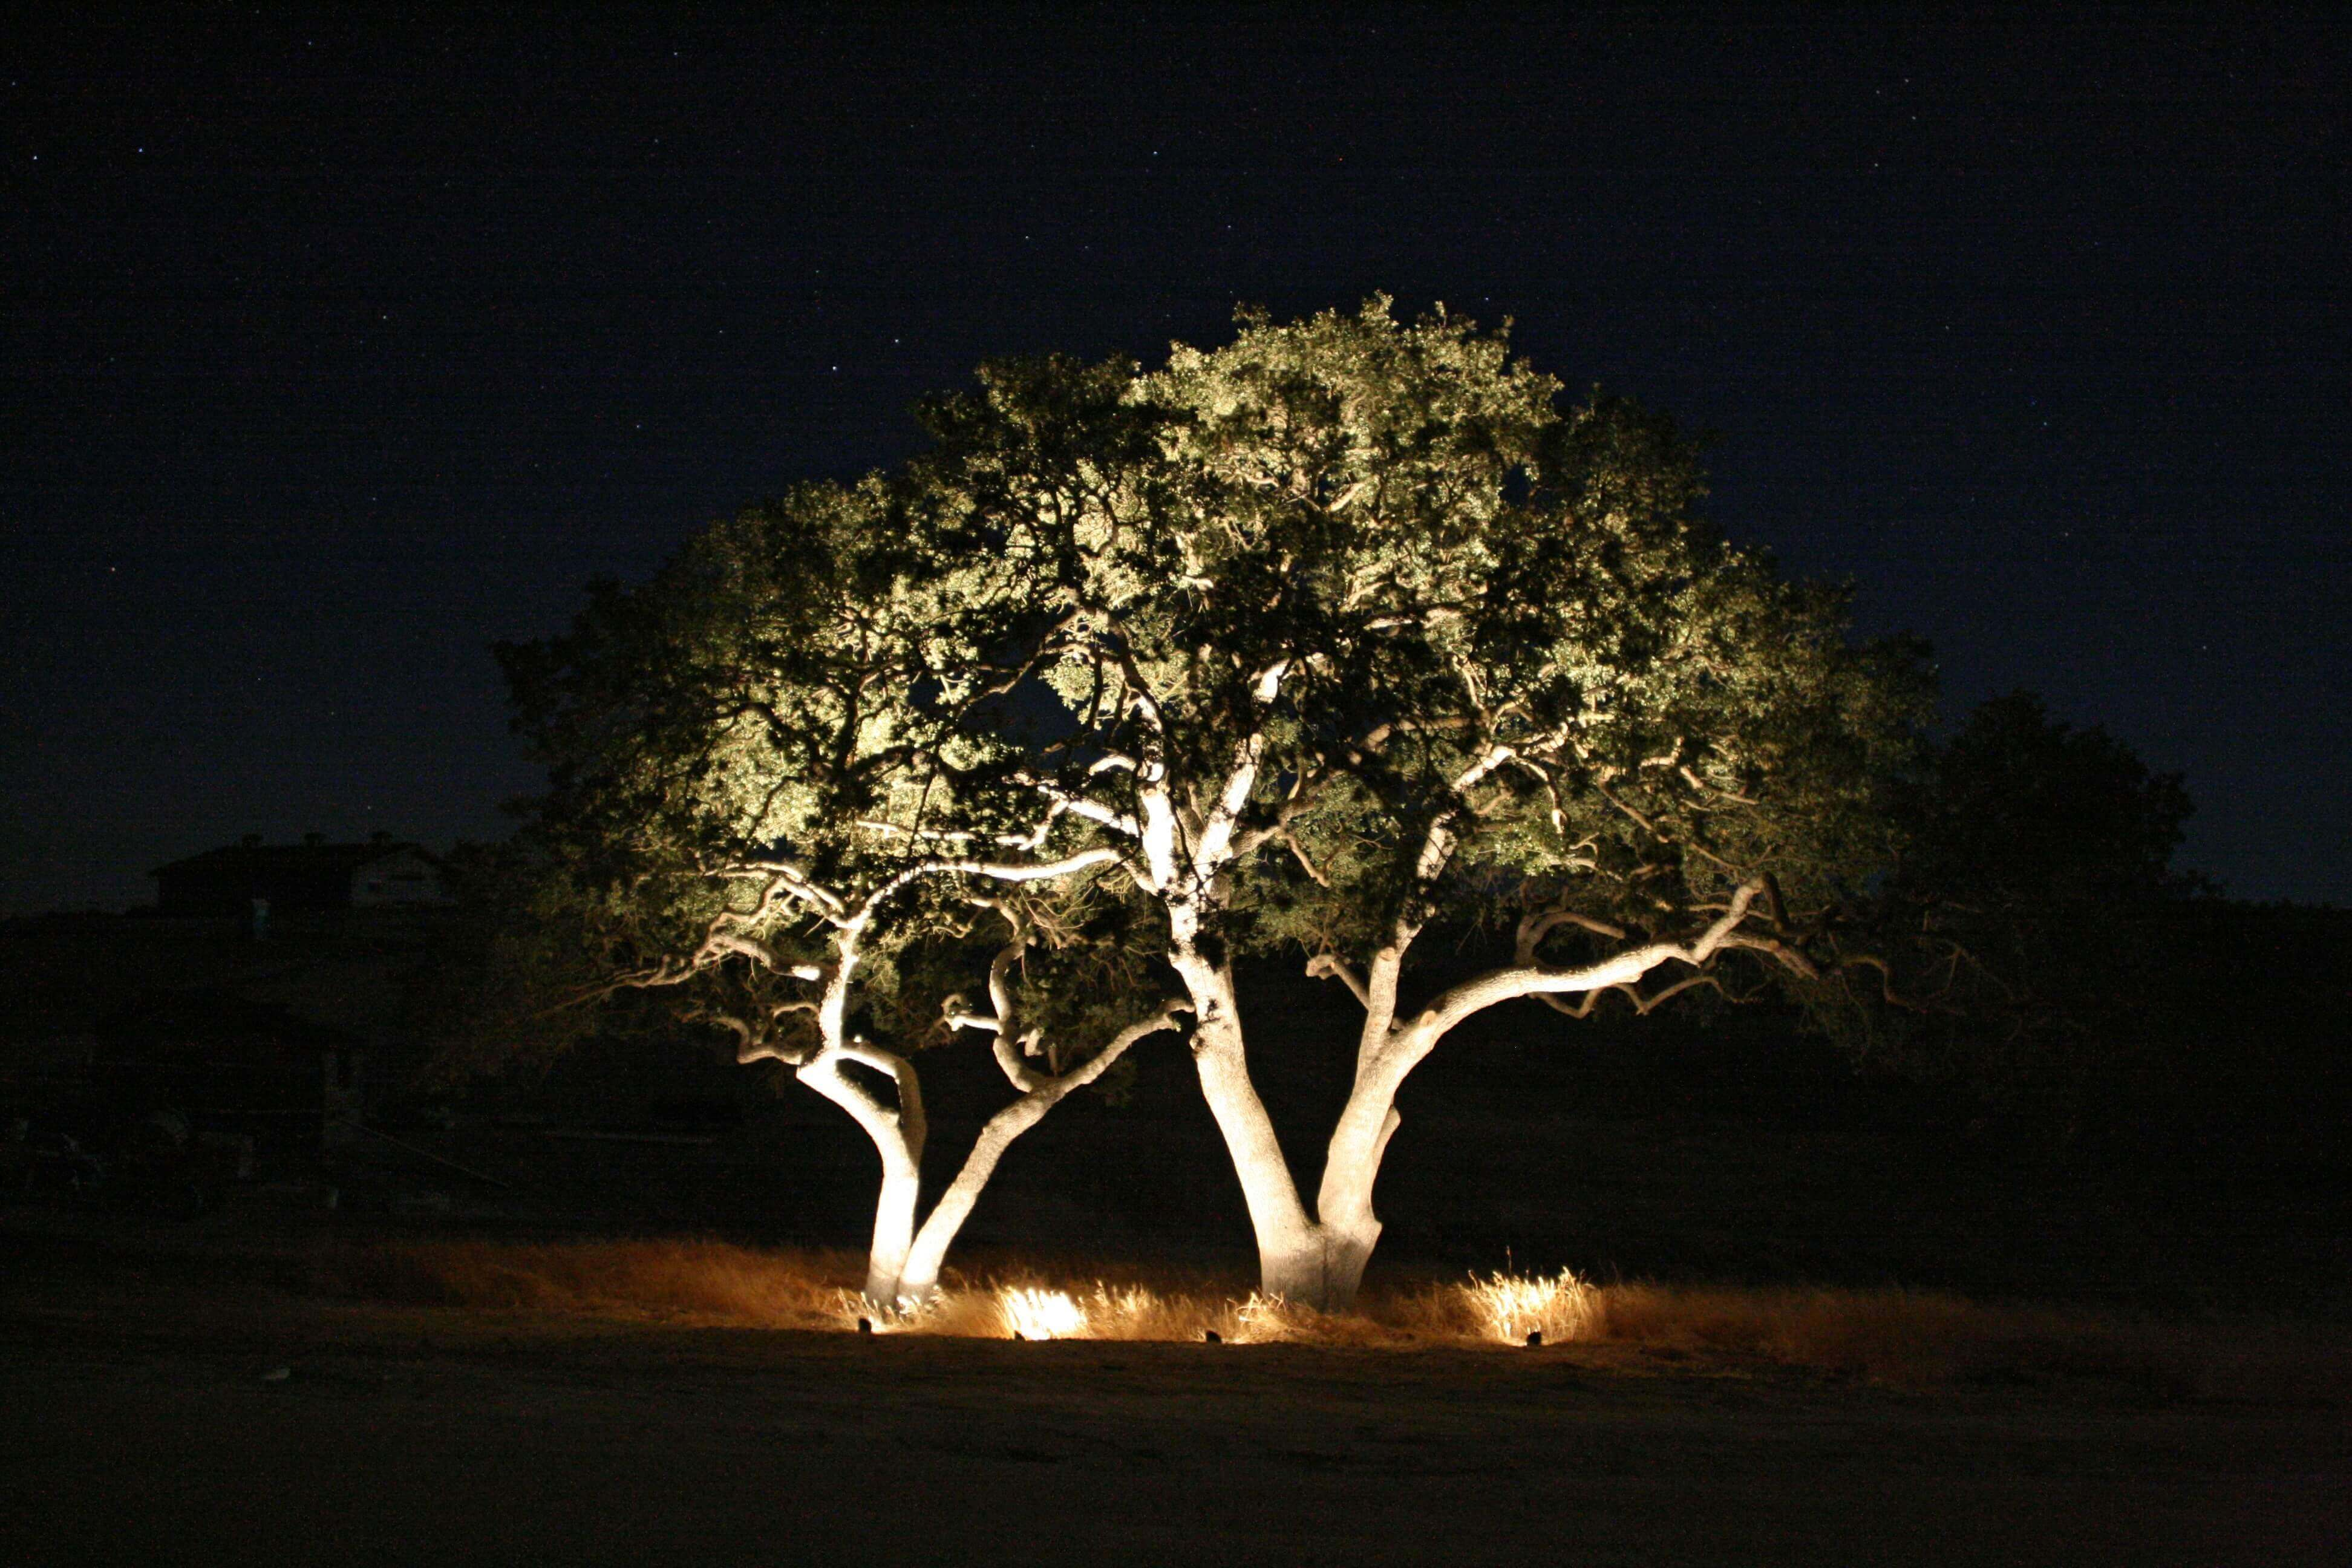 Trees with uplighting